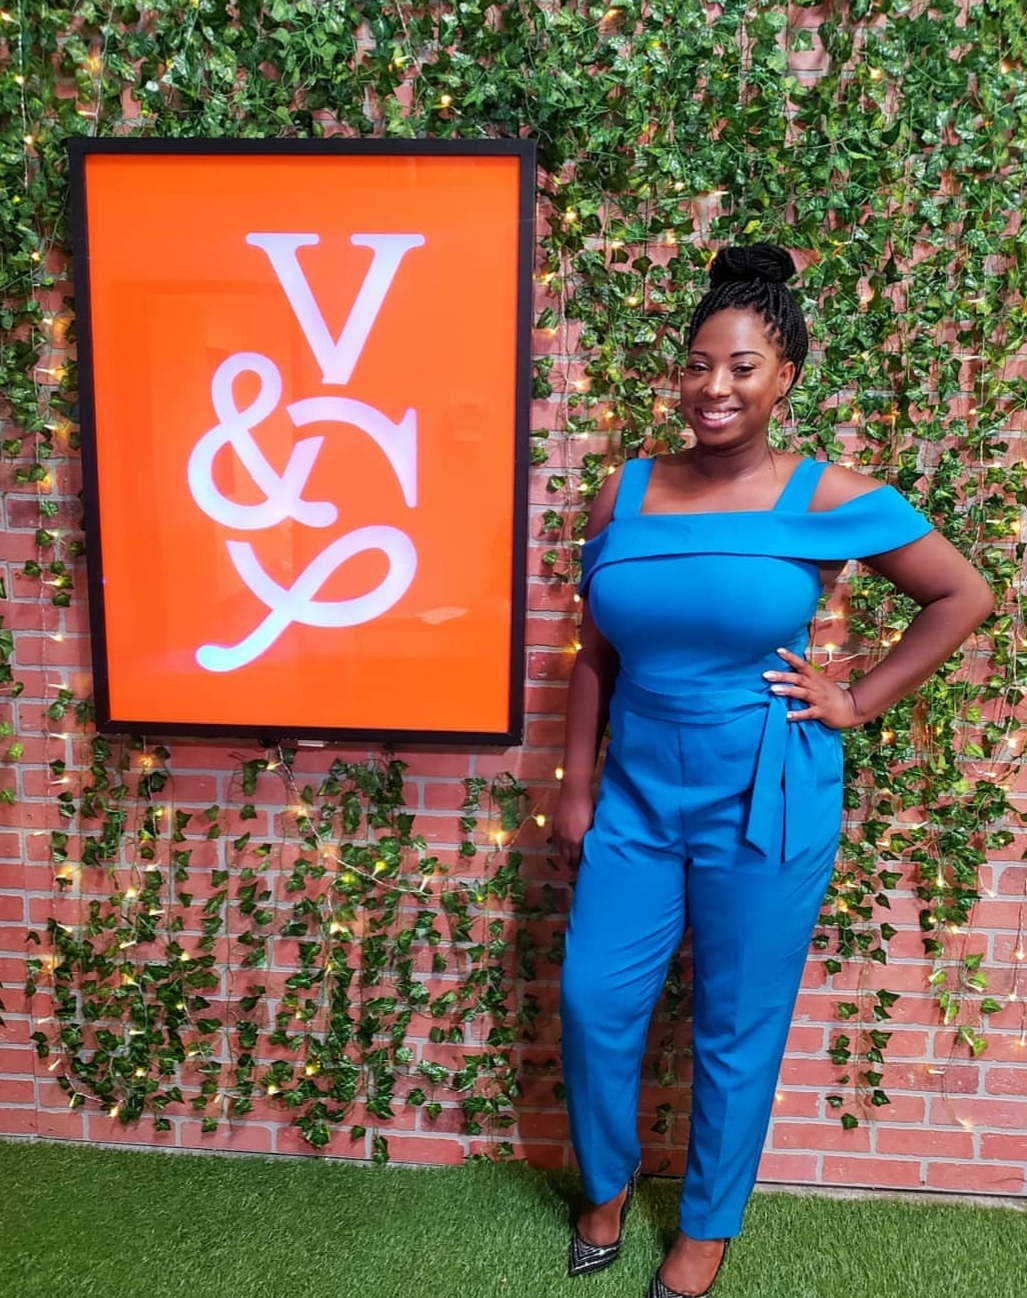 Young & Great Interview - CEO & Owner explains her journey and obstacles that she's had to overcome.